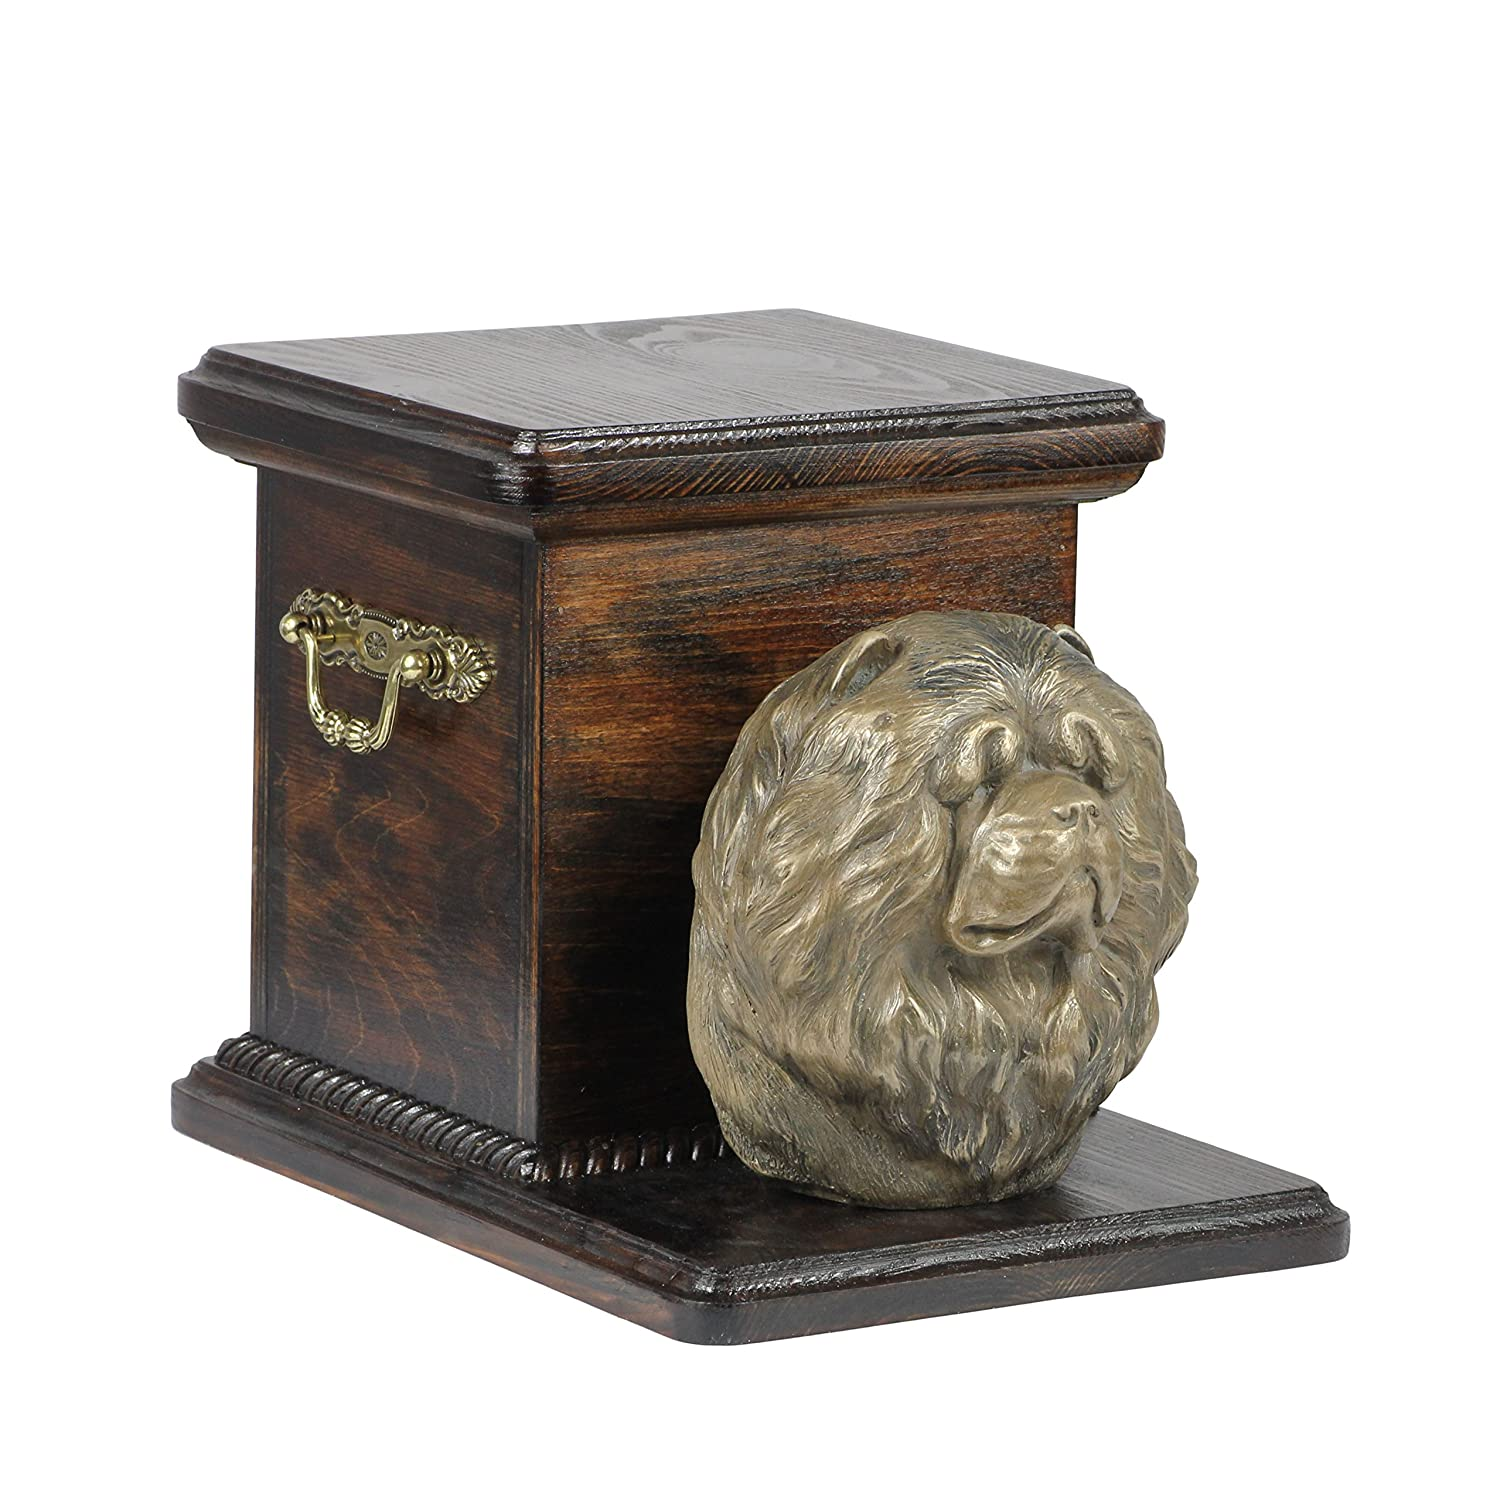 Chow Chow, memorial, urn for dog's ashes, with dog statue, ArtDog